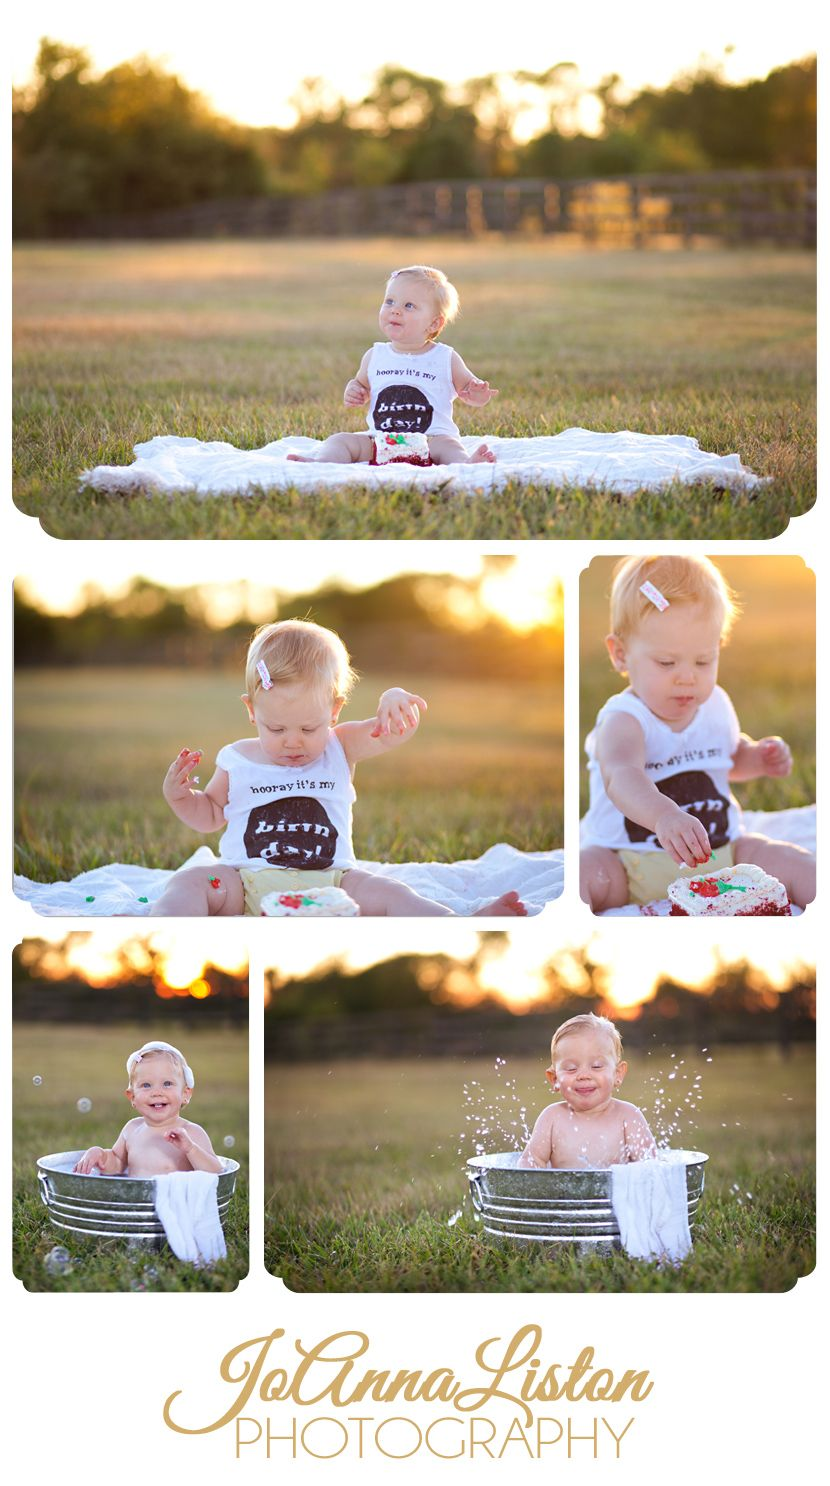 One Year Old Photo Session. Outdoor Cake Smash. Outdoor